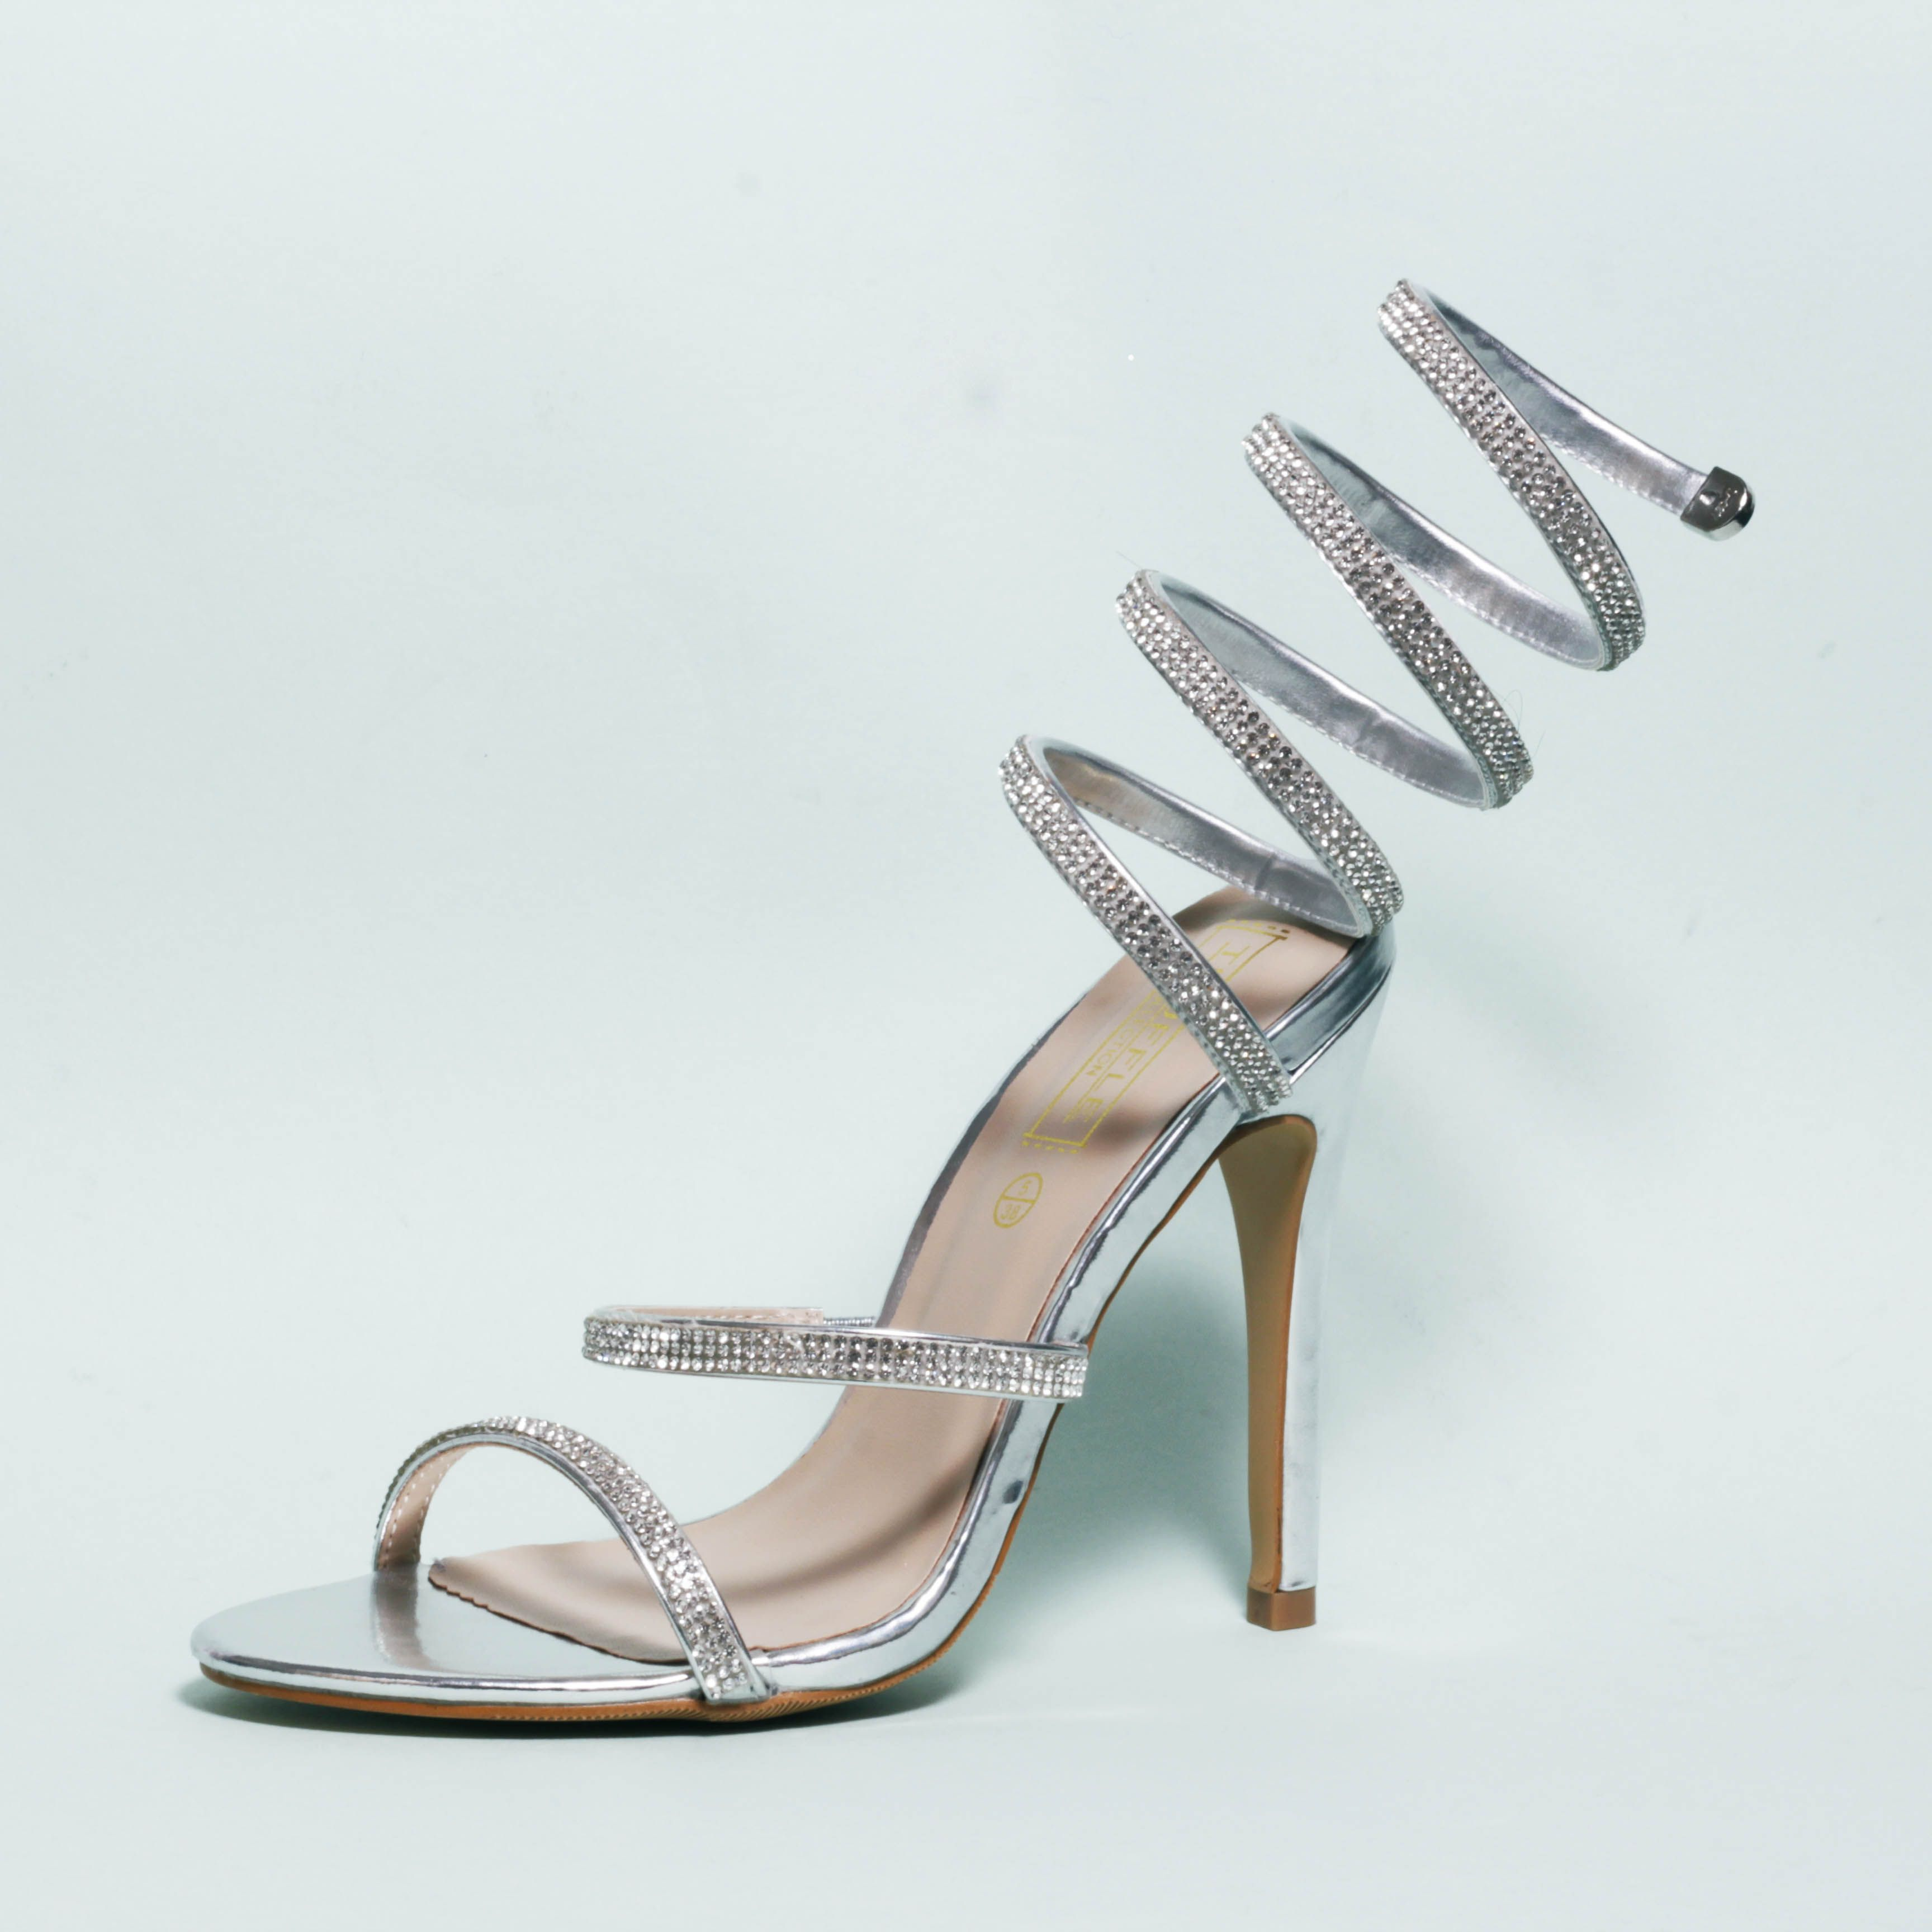 2d41aecfc675 yas girl channeling that 2000 era with these silver sparkly heels  korkys   korkysshoes